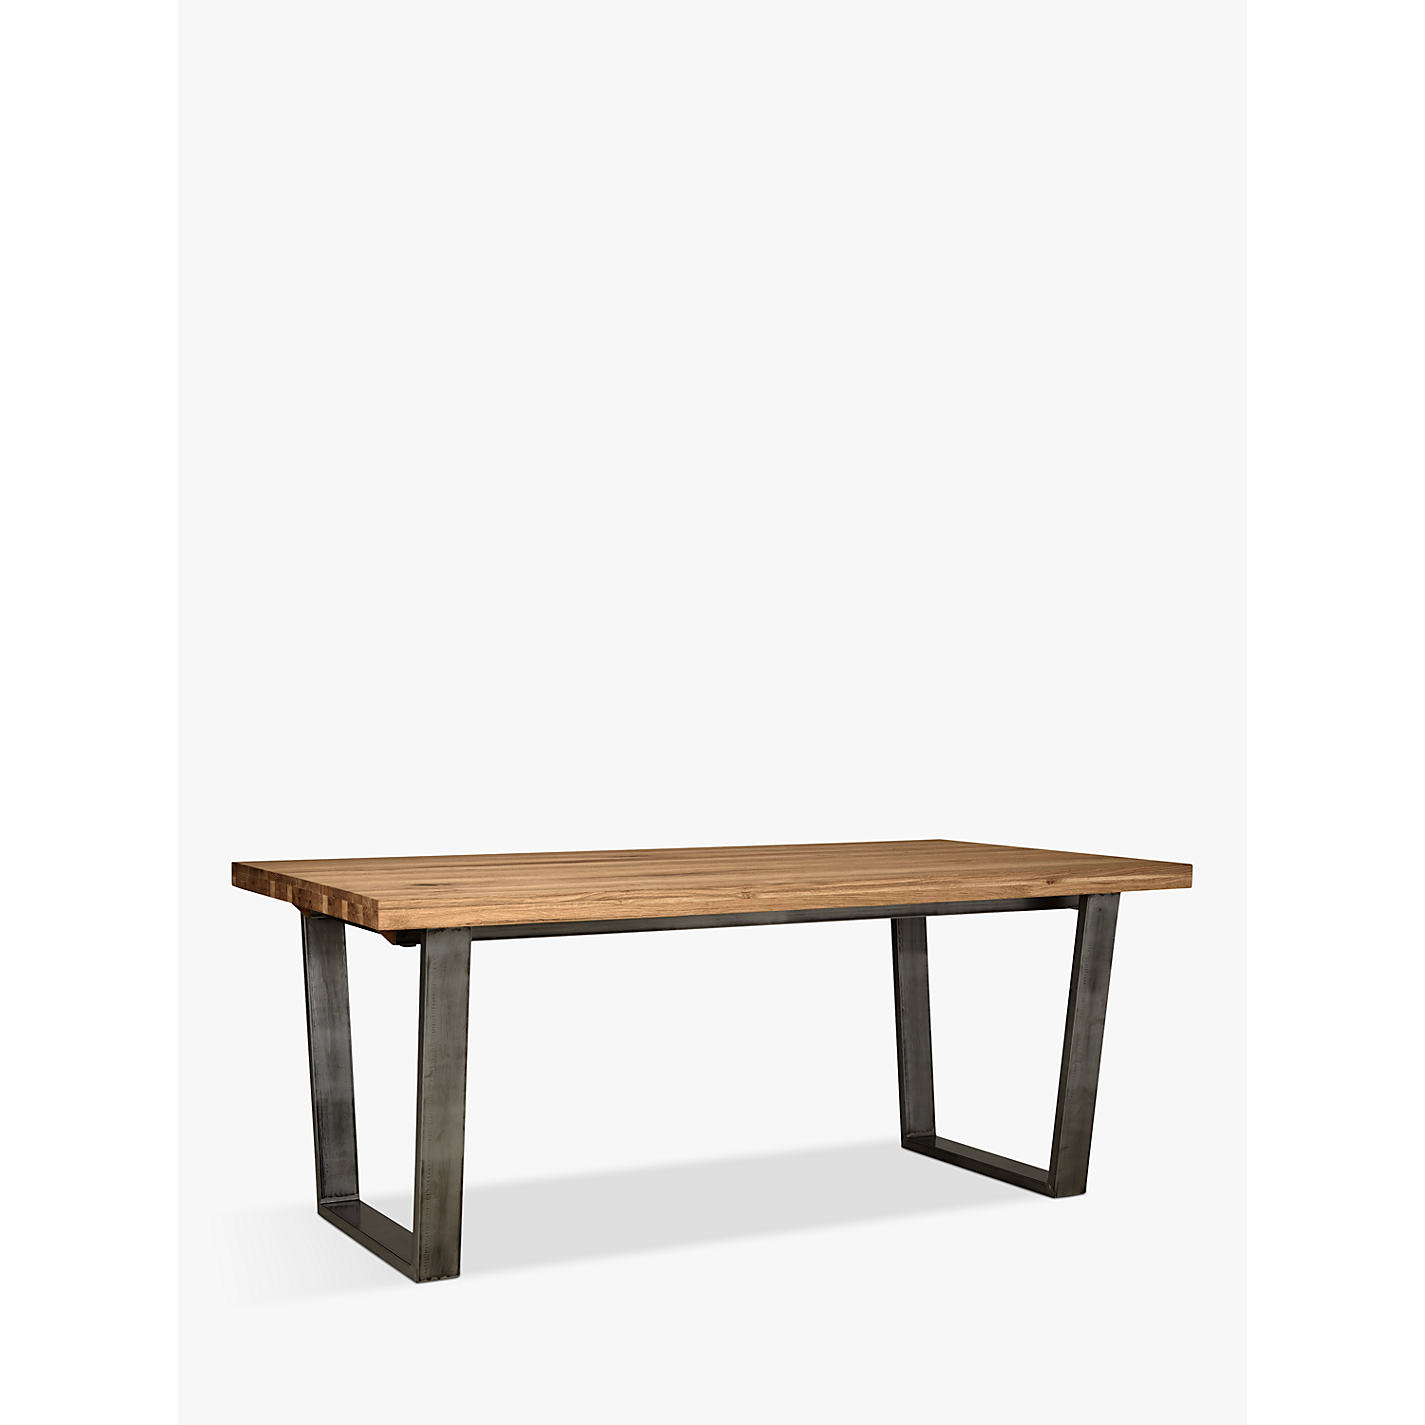 Buy John Lewis Calia 8 Seater Dining Table Online At Johnlewis.com ...